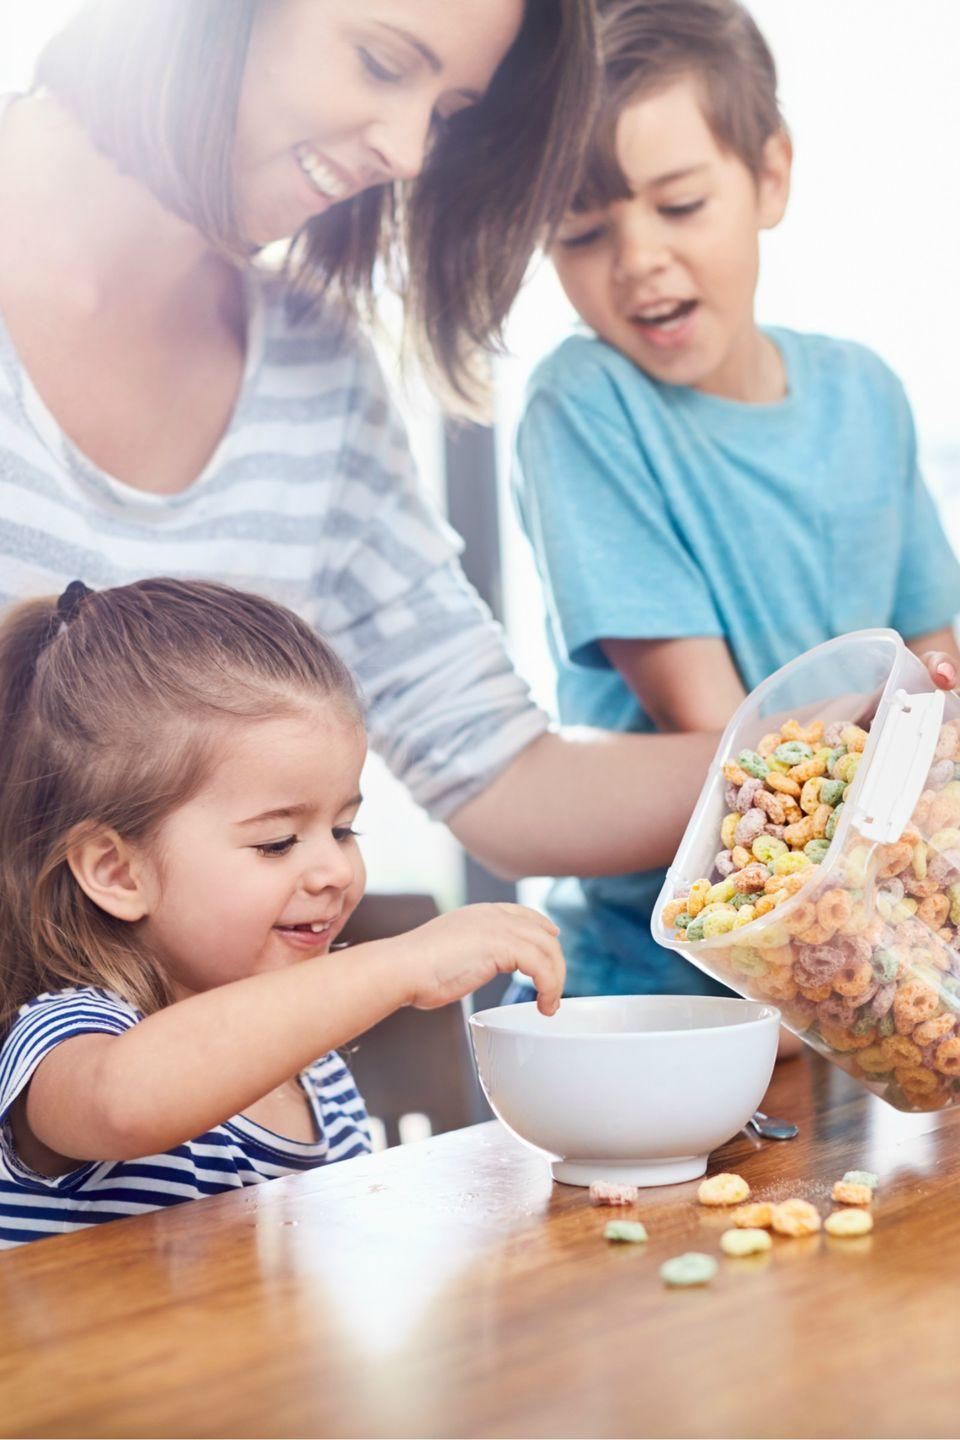 """<p>Move kids' cereal boxes, bowls, and cups to an """"I can reach it!"""" lower cabinet. You can also put juice boxes, milk, and <a href=""""https://www.womansday.com/food-recipes/food-drinks/g2146/after-school-snacks/"""" rel=""""nofollow noopener"""" target=""""_blank"""" data-ylk=""""slk:other snacks"""" class=""""link rapid-noclick-resp"""">other snacks </a>in an accessible place <a href=""""https://www.womansday.com/food-recipes/g22799763/food-not-stored-in-fridge/"""" rel=""""nofollow noopener"""" target=""""_blank"""" data-ylk=""""slk:in the refrigerator"""" class=""""link rapid-noclick-resp"""">in the refrigerator</a>.</p>"""